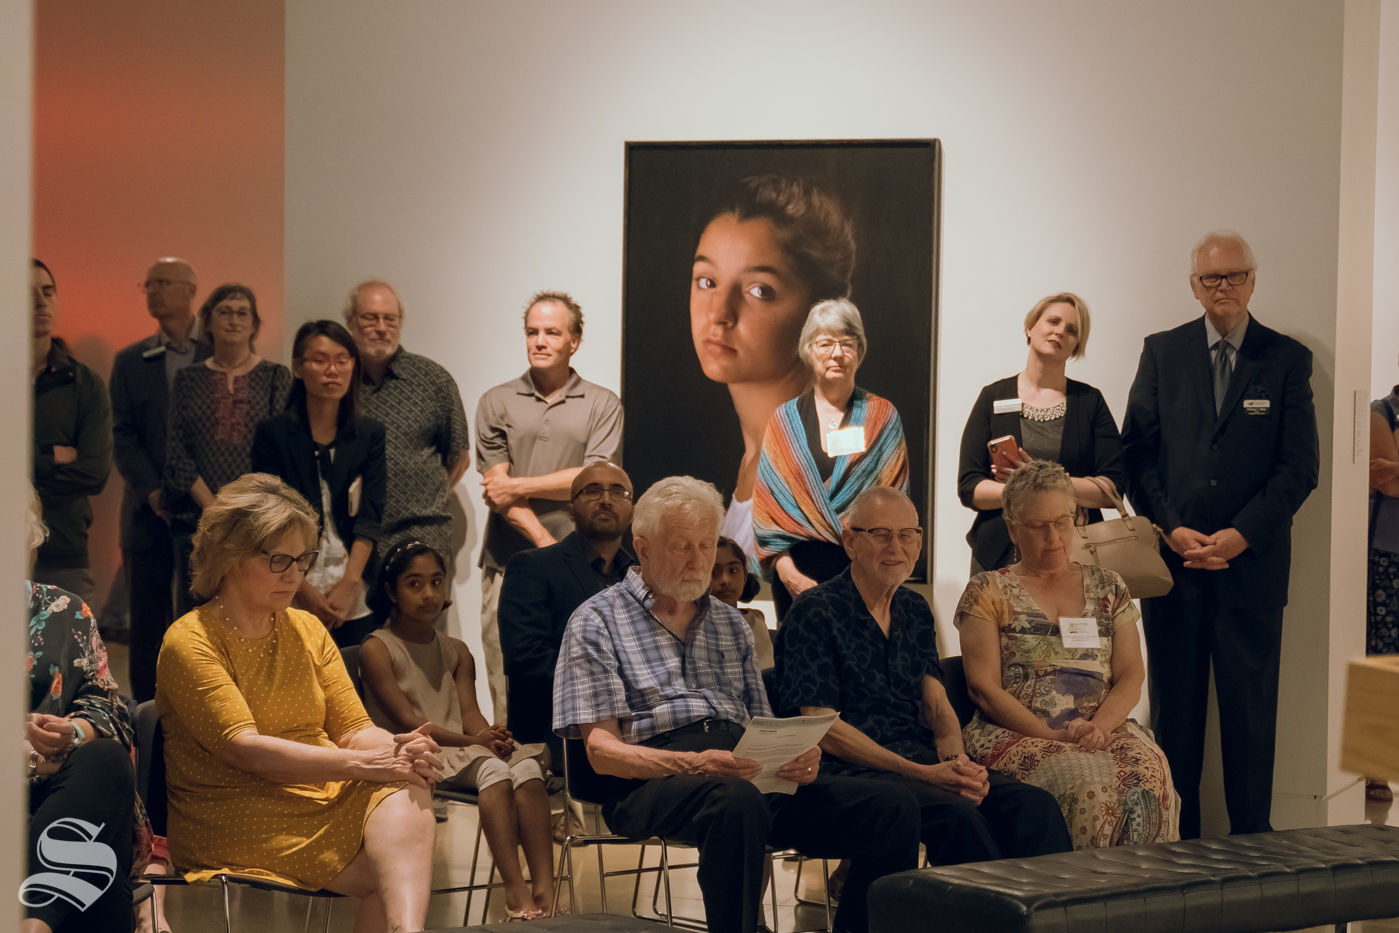 Guests+gather+around+during+the+art+exhibition+opening.+The+event+was+hosted+by+the+Ulrich+Museum+of+Art+on+September+12%2C+2019.